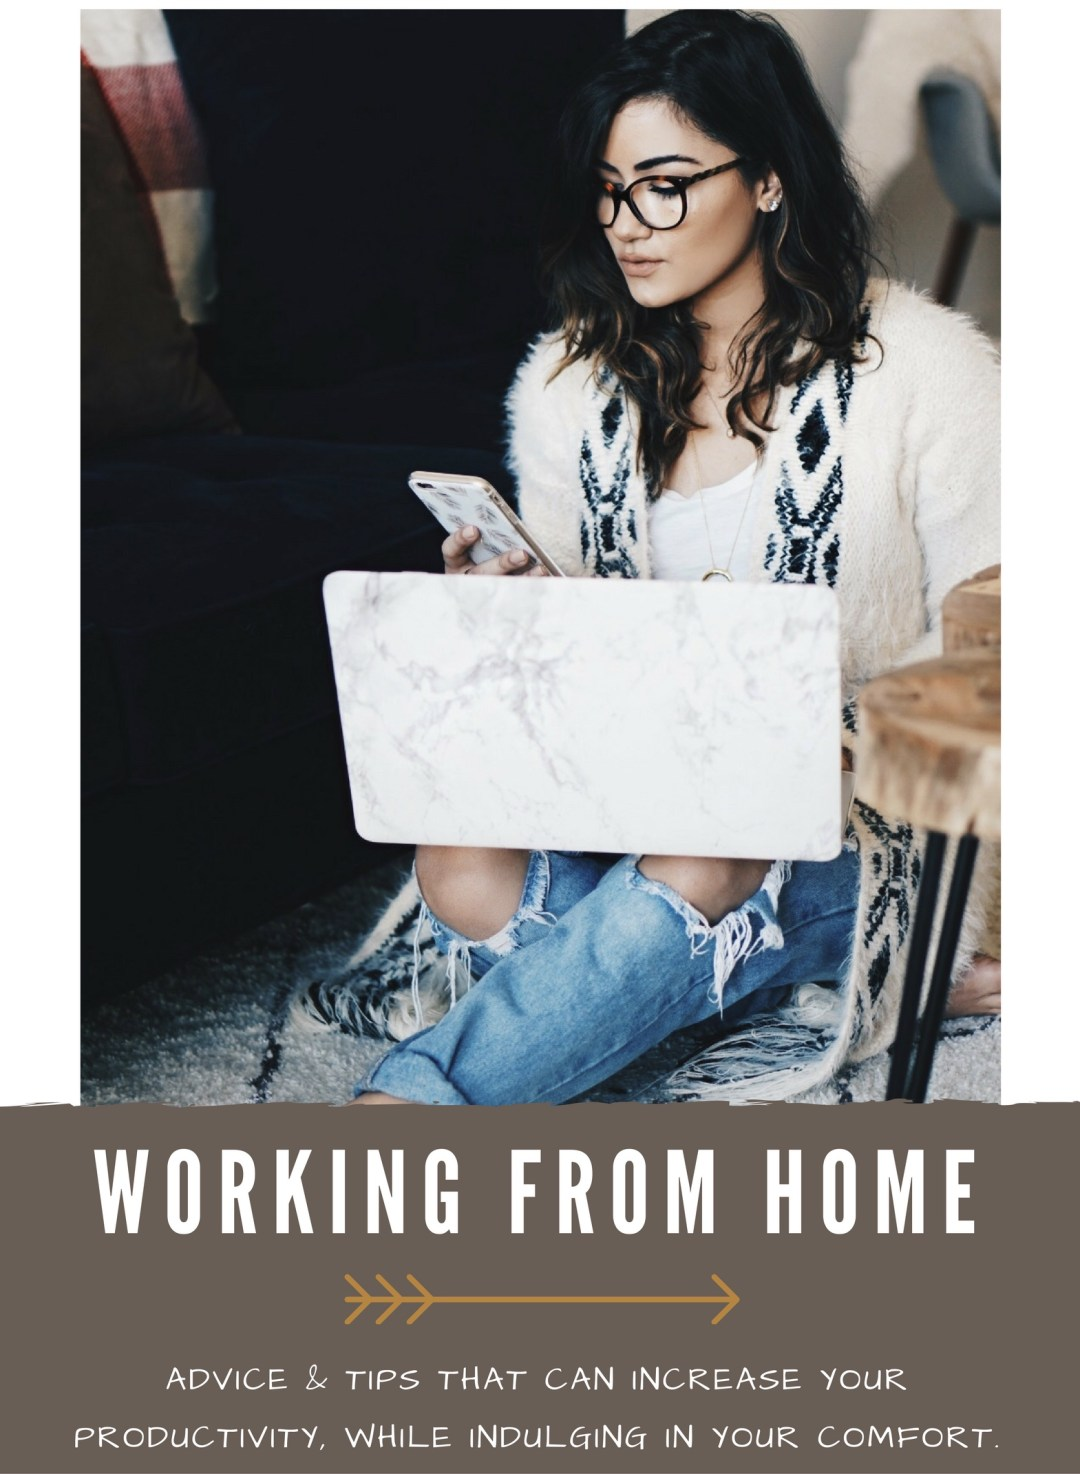 The Best Ways to Increase Productivity While Working From Home